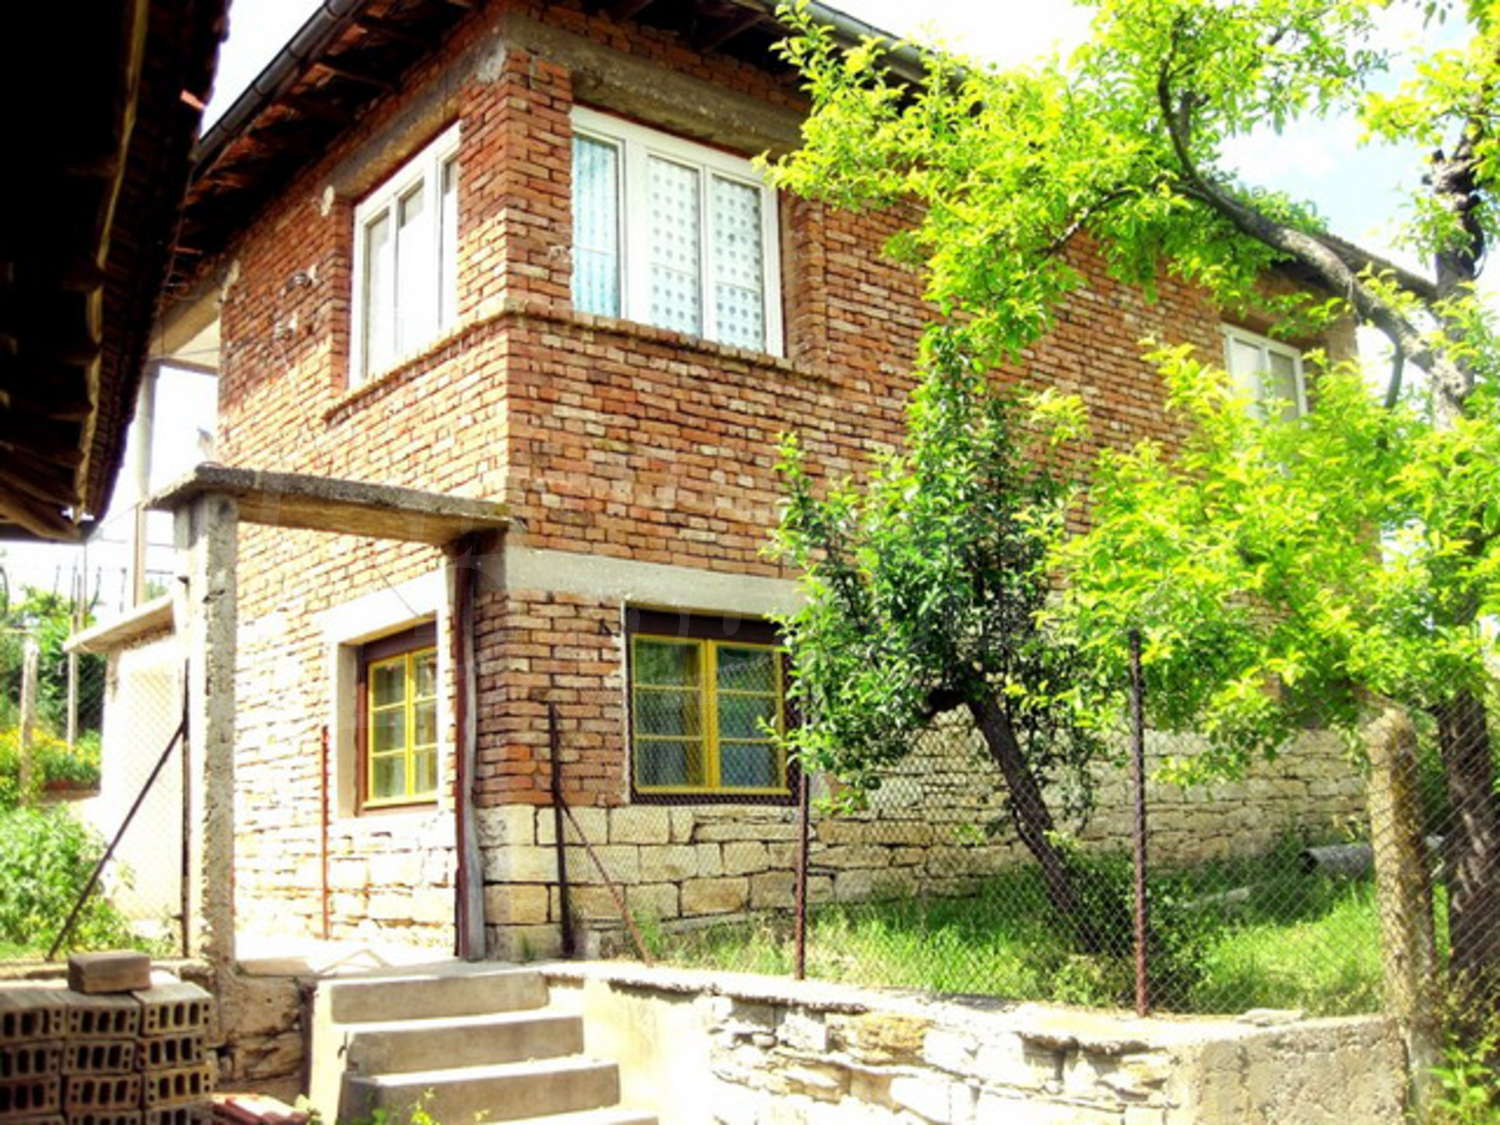 House for sale near rousse bulgaria a big house with for Big nice houses for sale